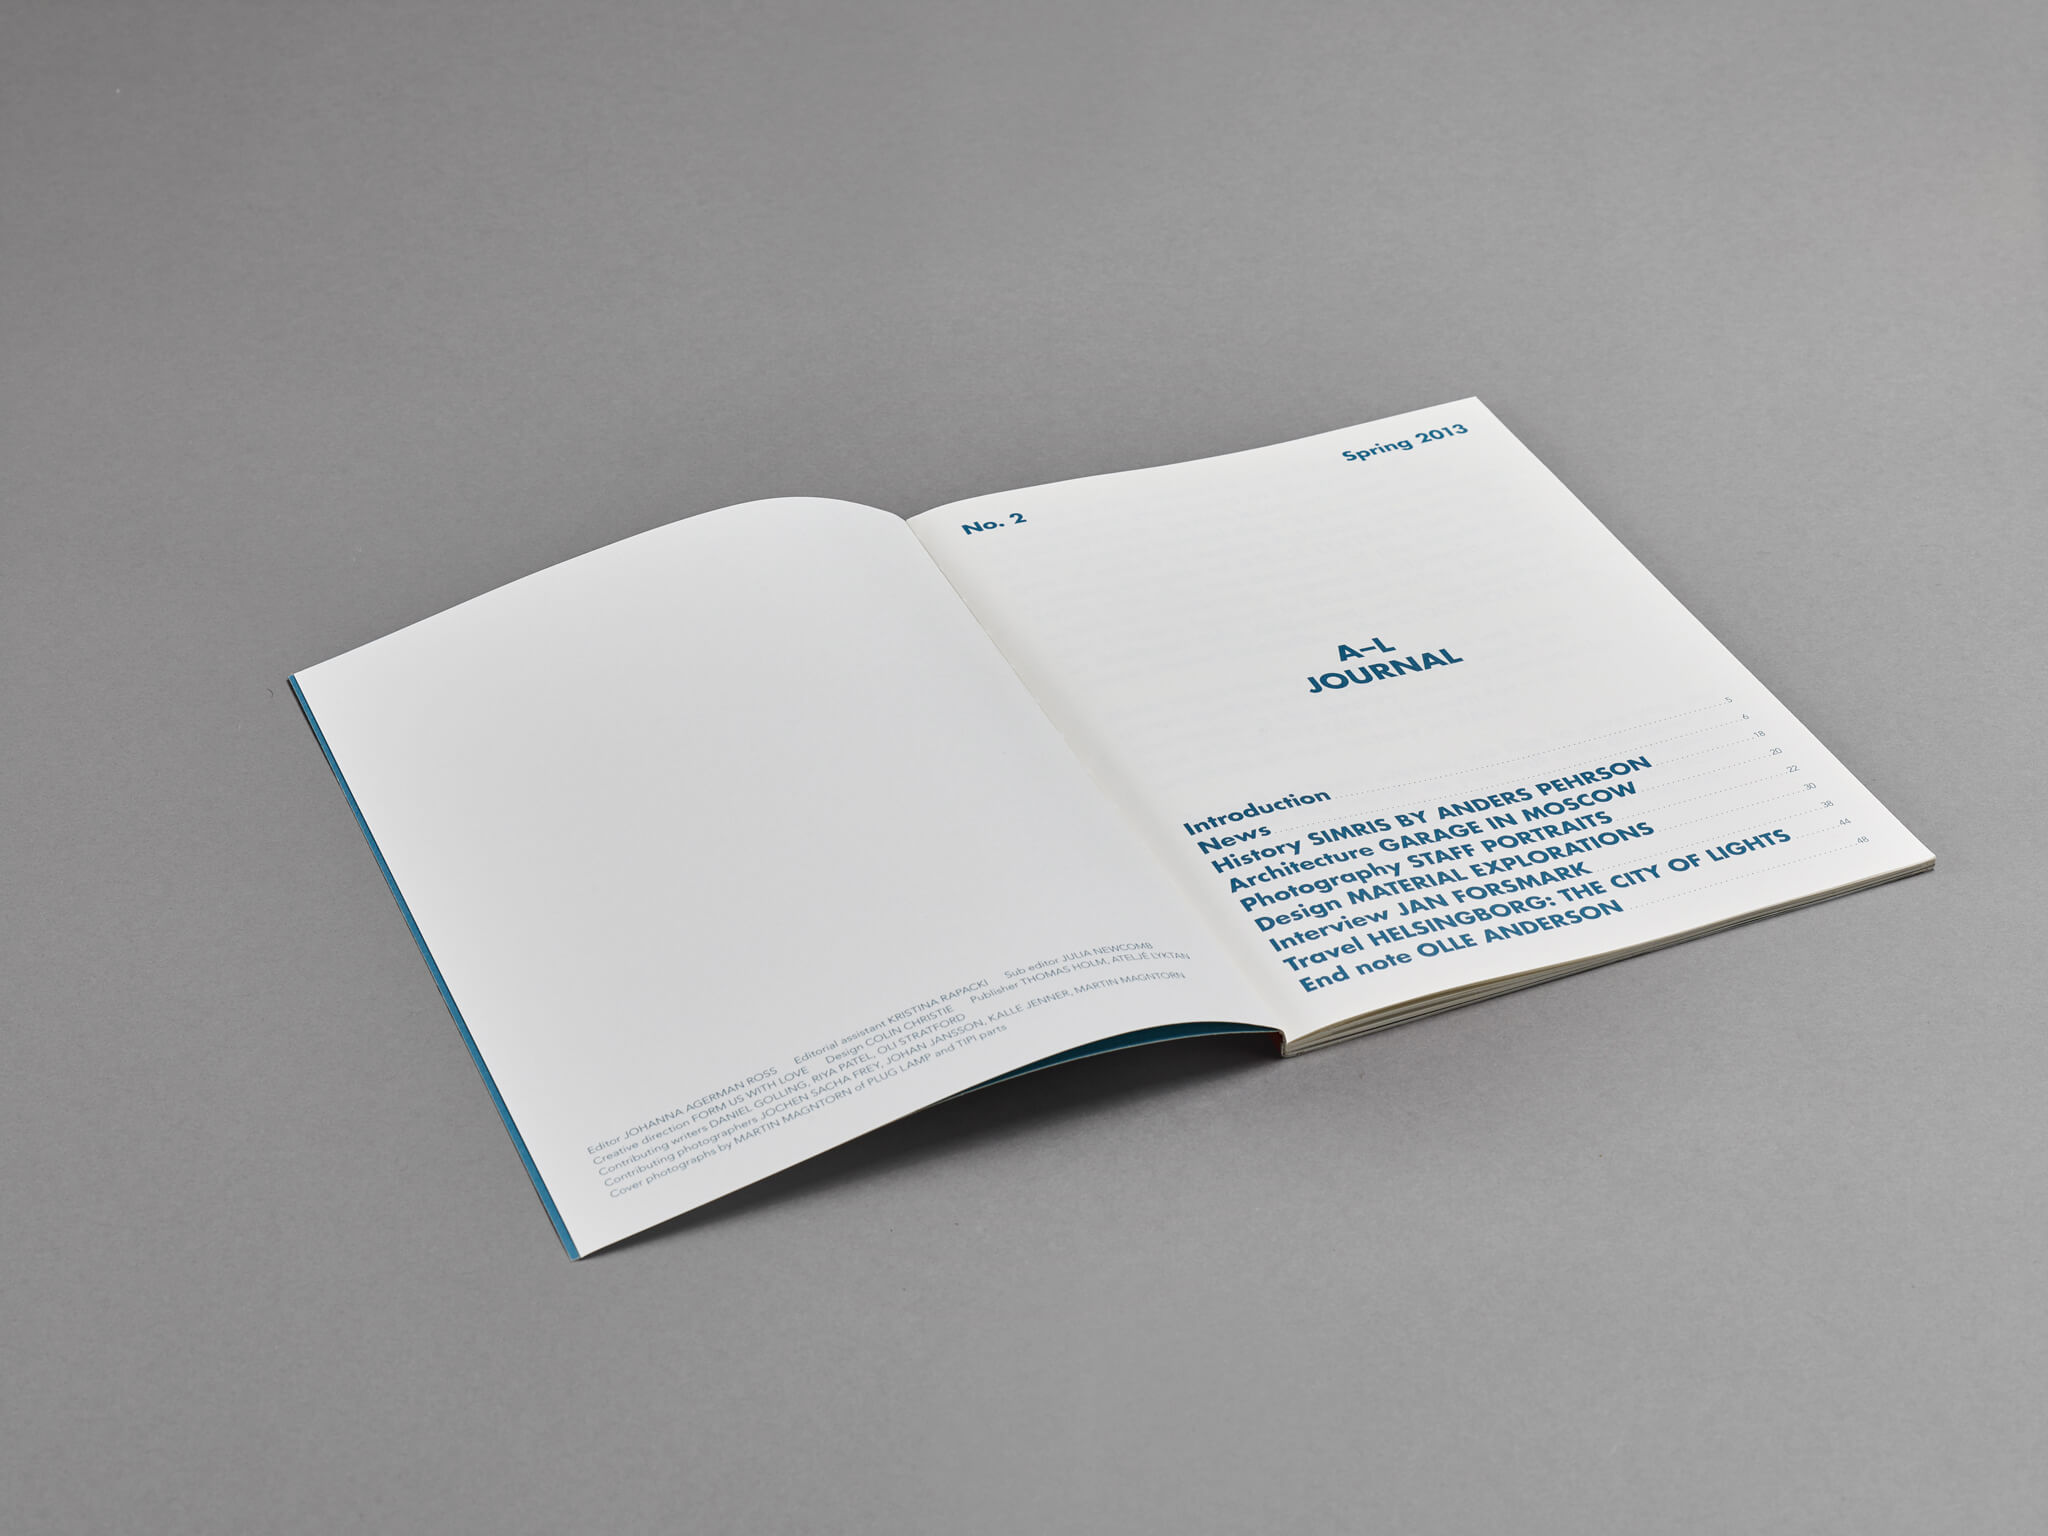 Tack-Studio-Creative-Agency-AteljeLyktan-Lighting-Copywriting-Journal_04